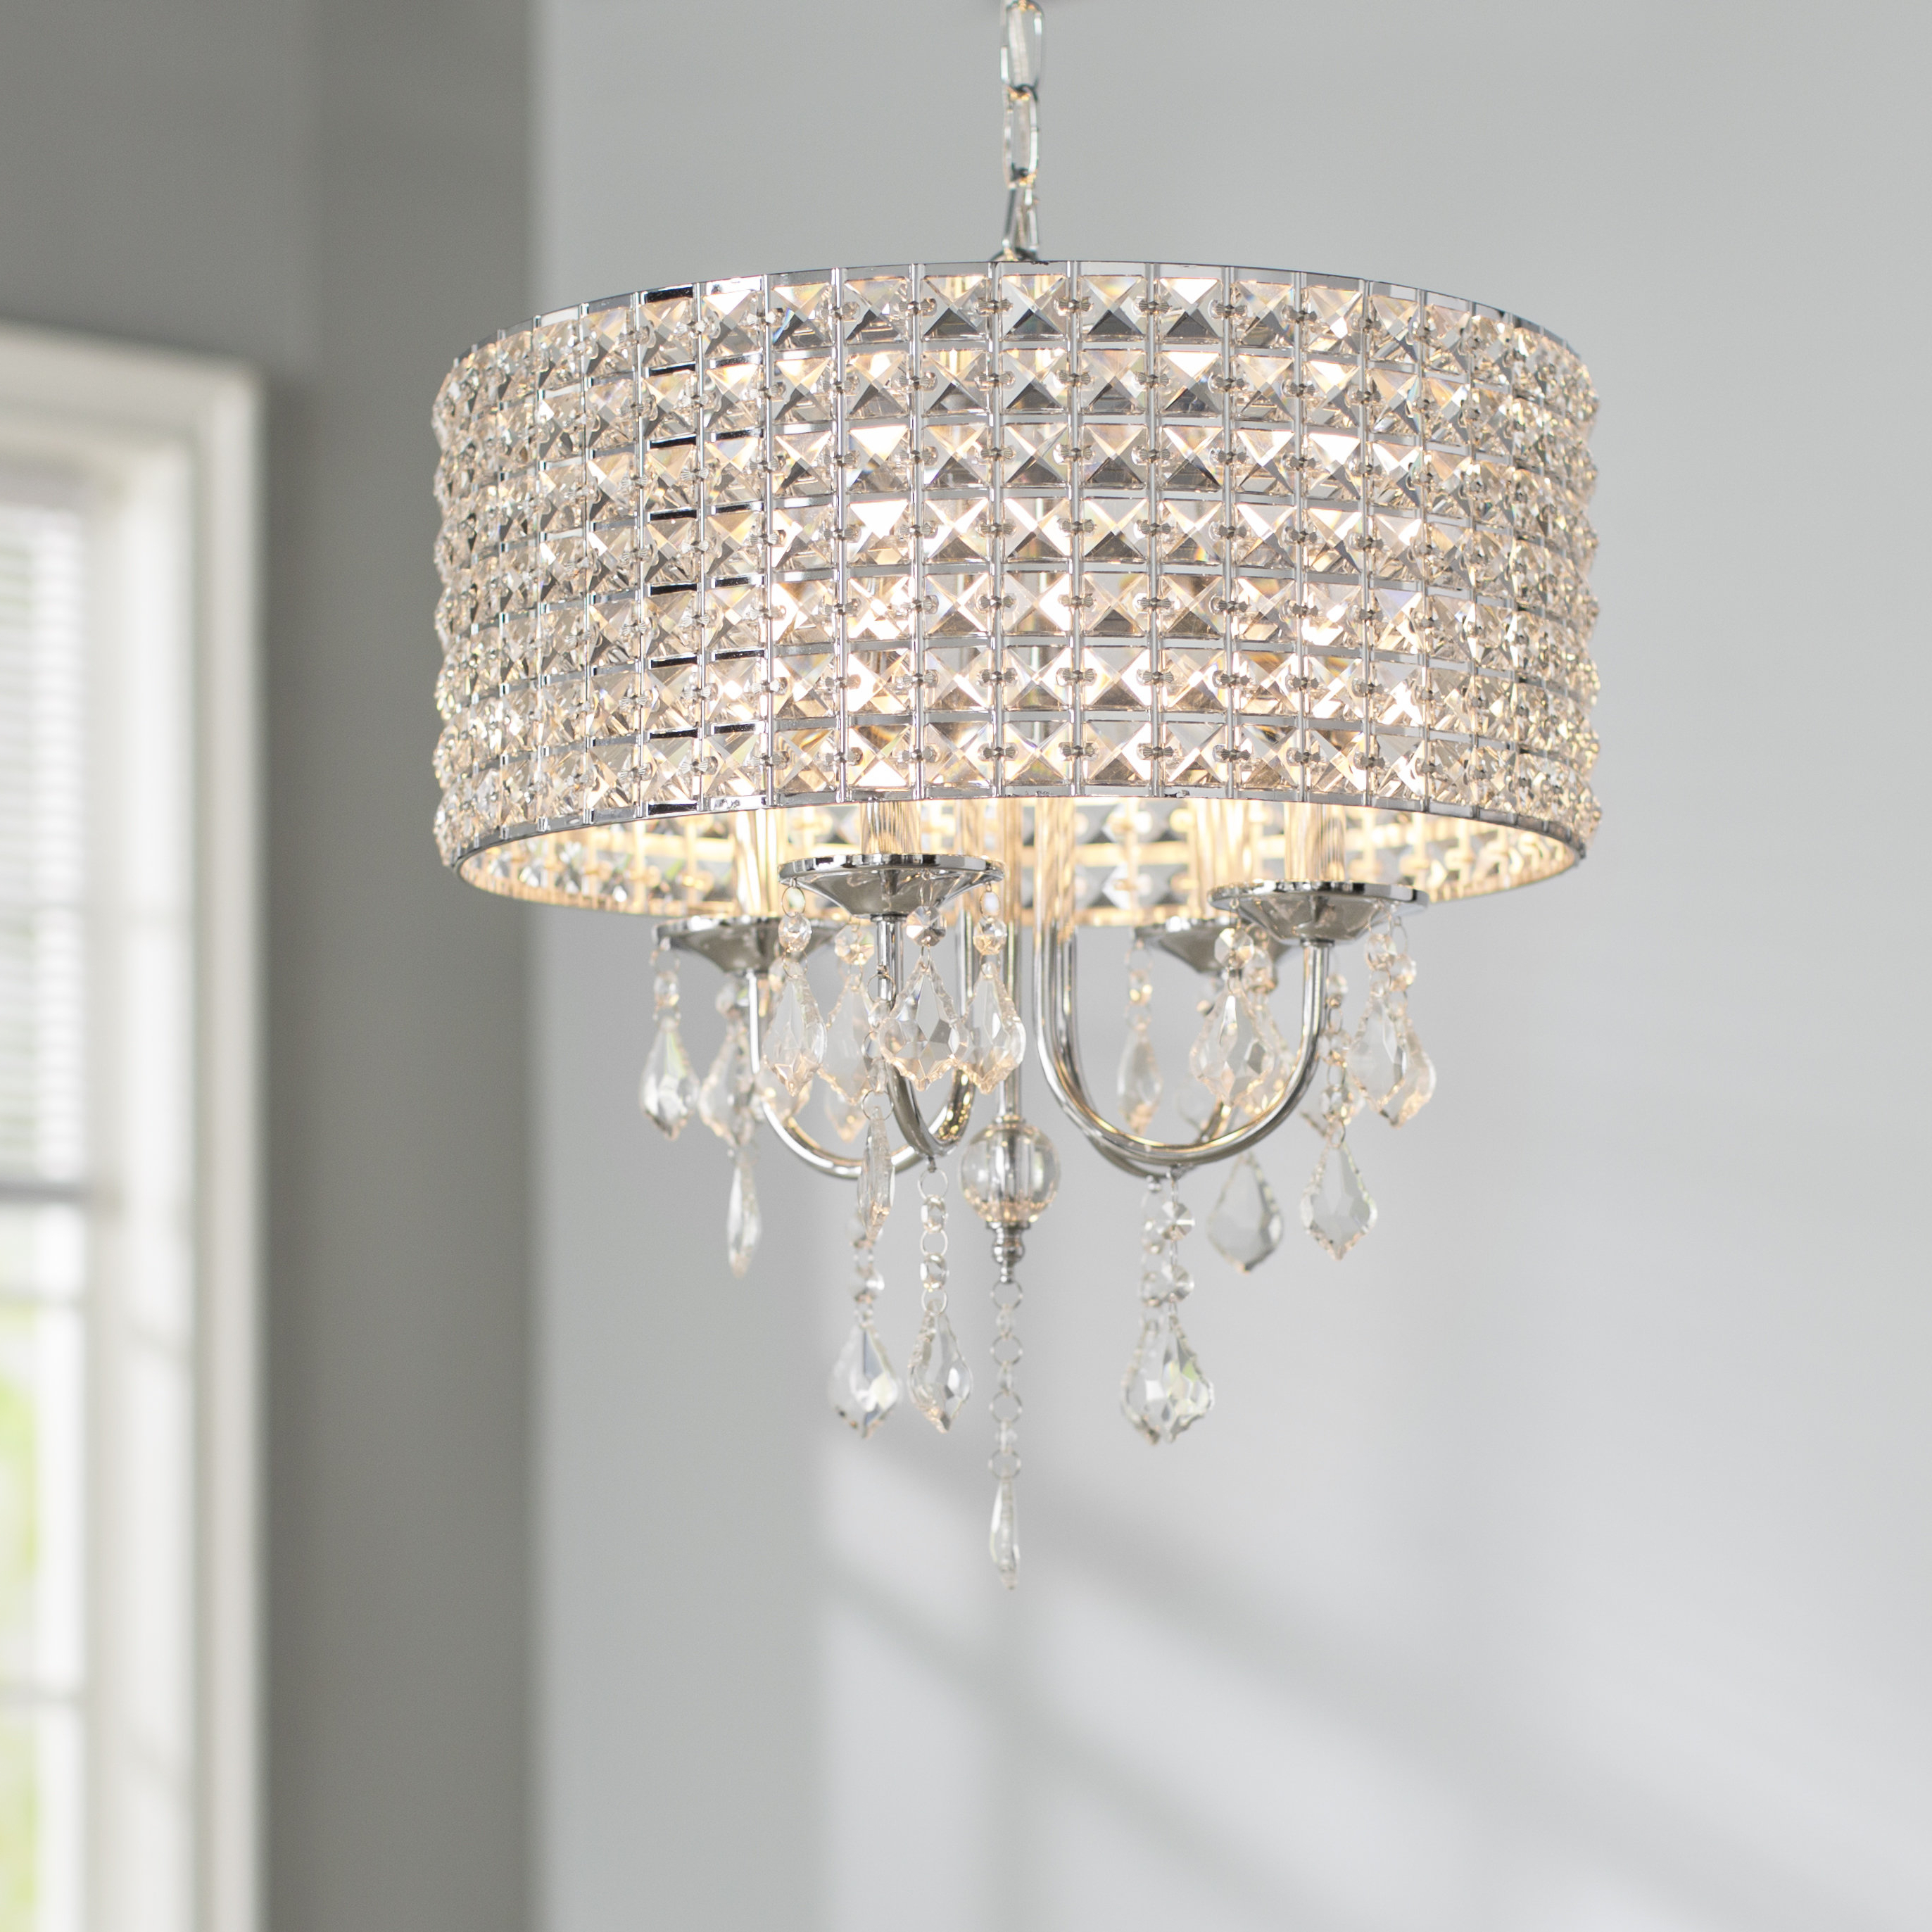 Popular Albano 4 Light Crystal Chandeliers In Willa Arlo Interiors Albano 4 Light Crystal Chandelier (View 17 of 20)